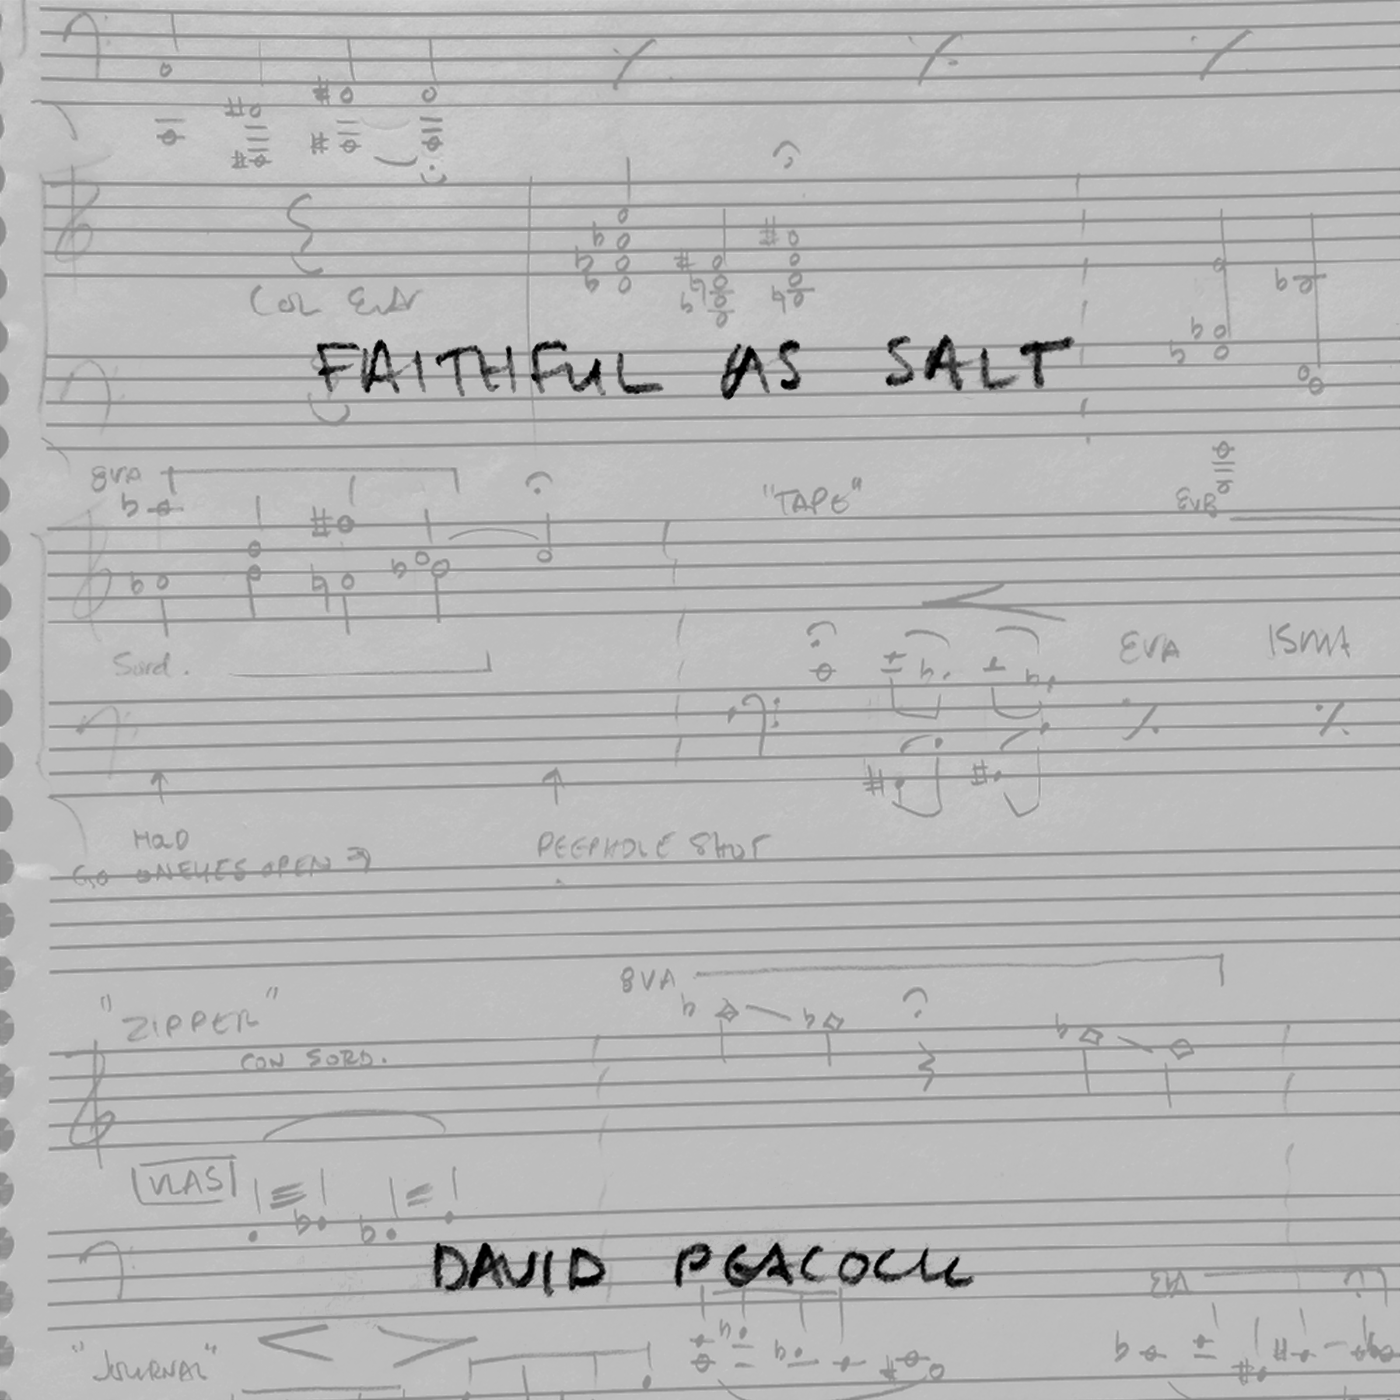 Faithful as Salt (Original Score)